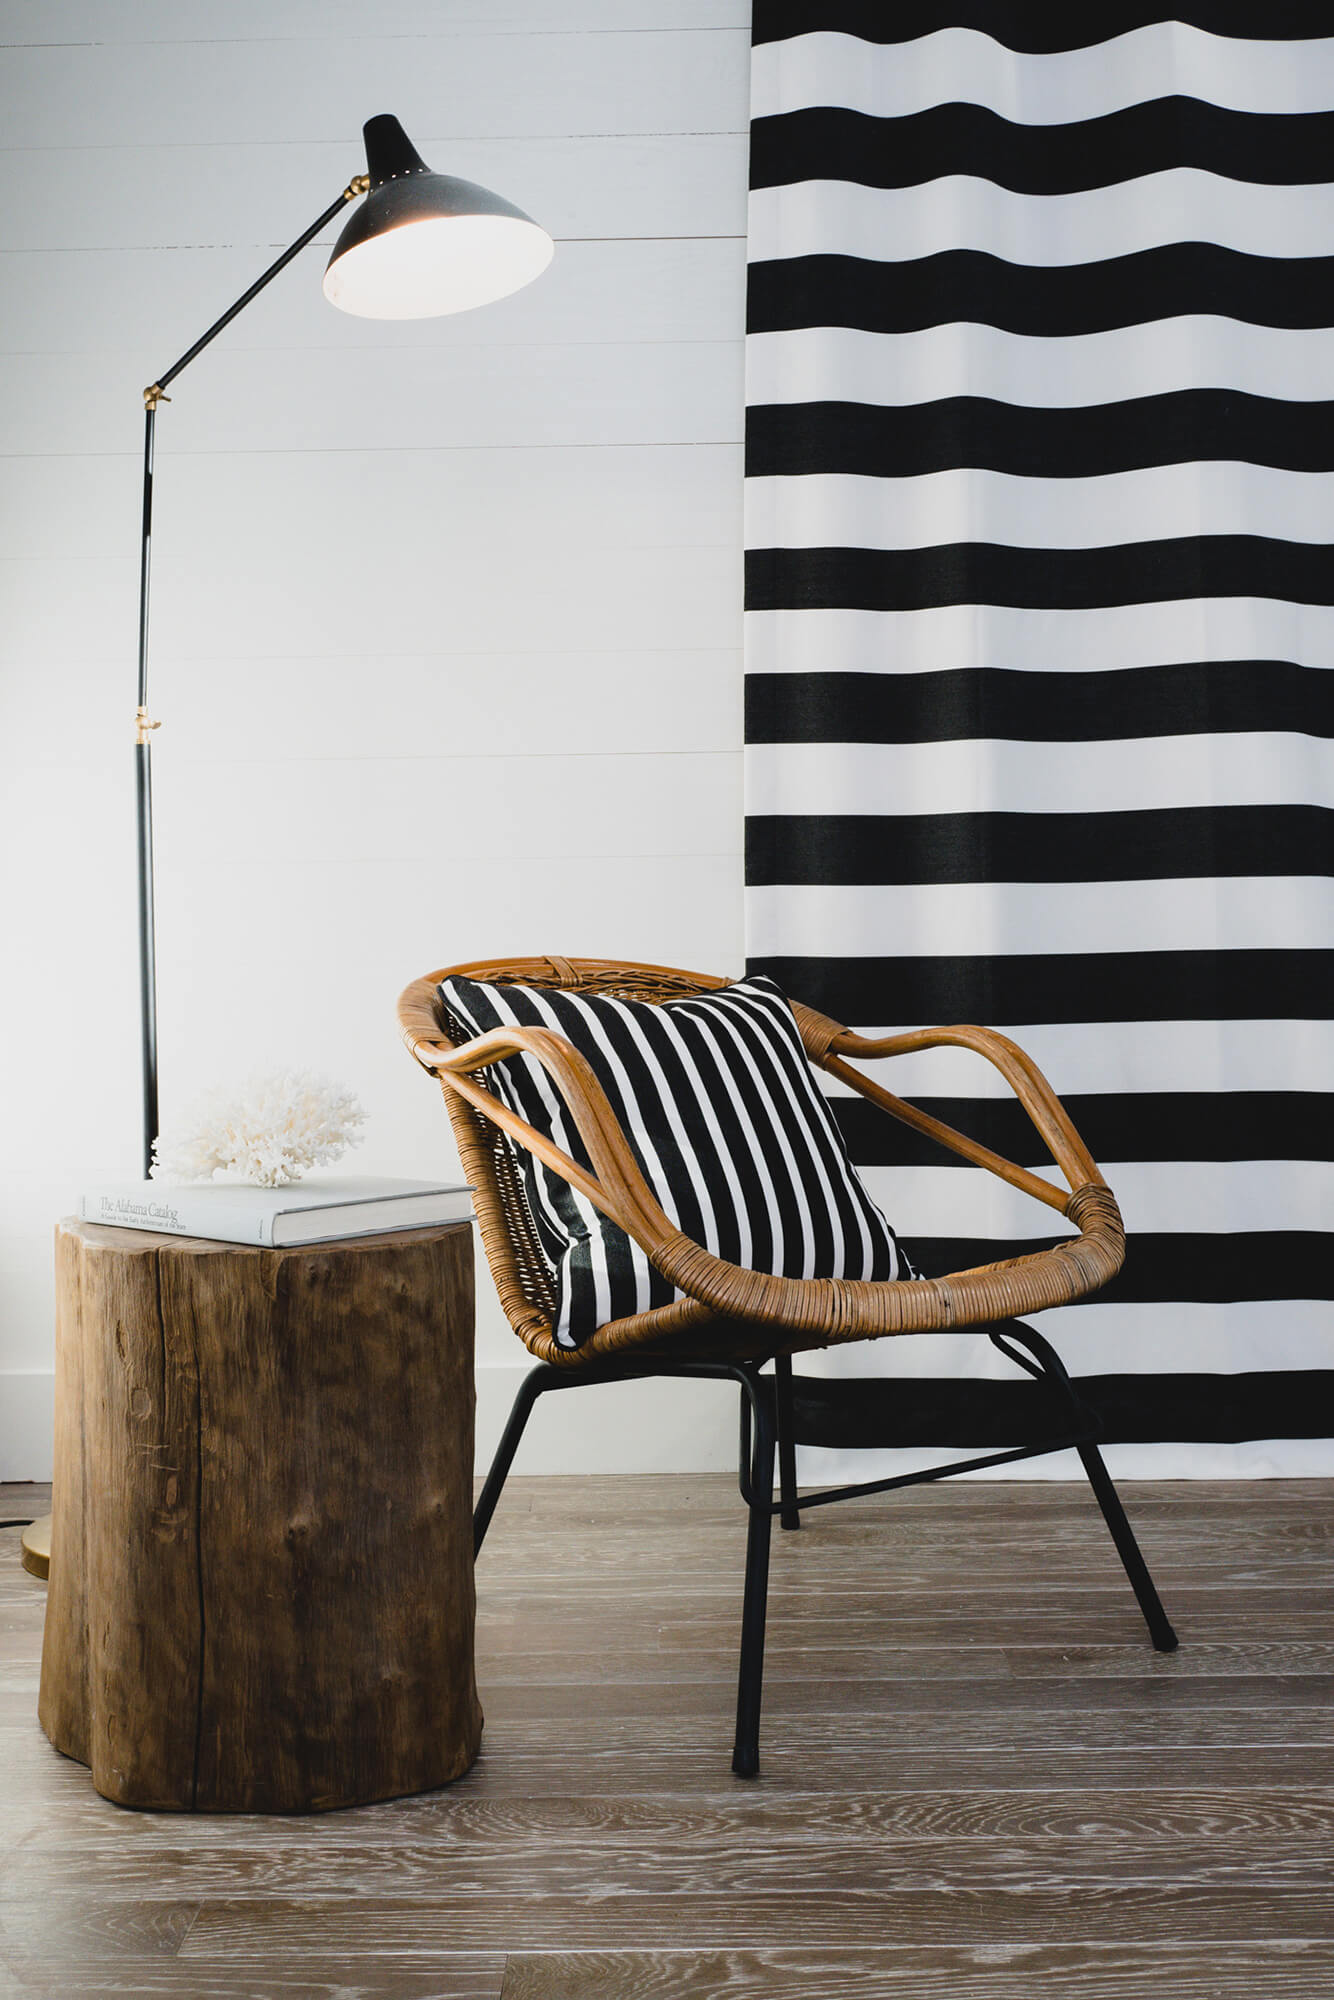 Chair with black and white striped pillow with black and white striped drapes in the background